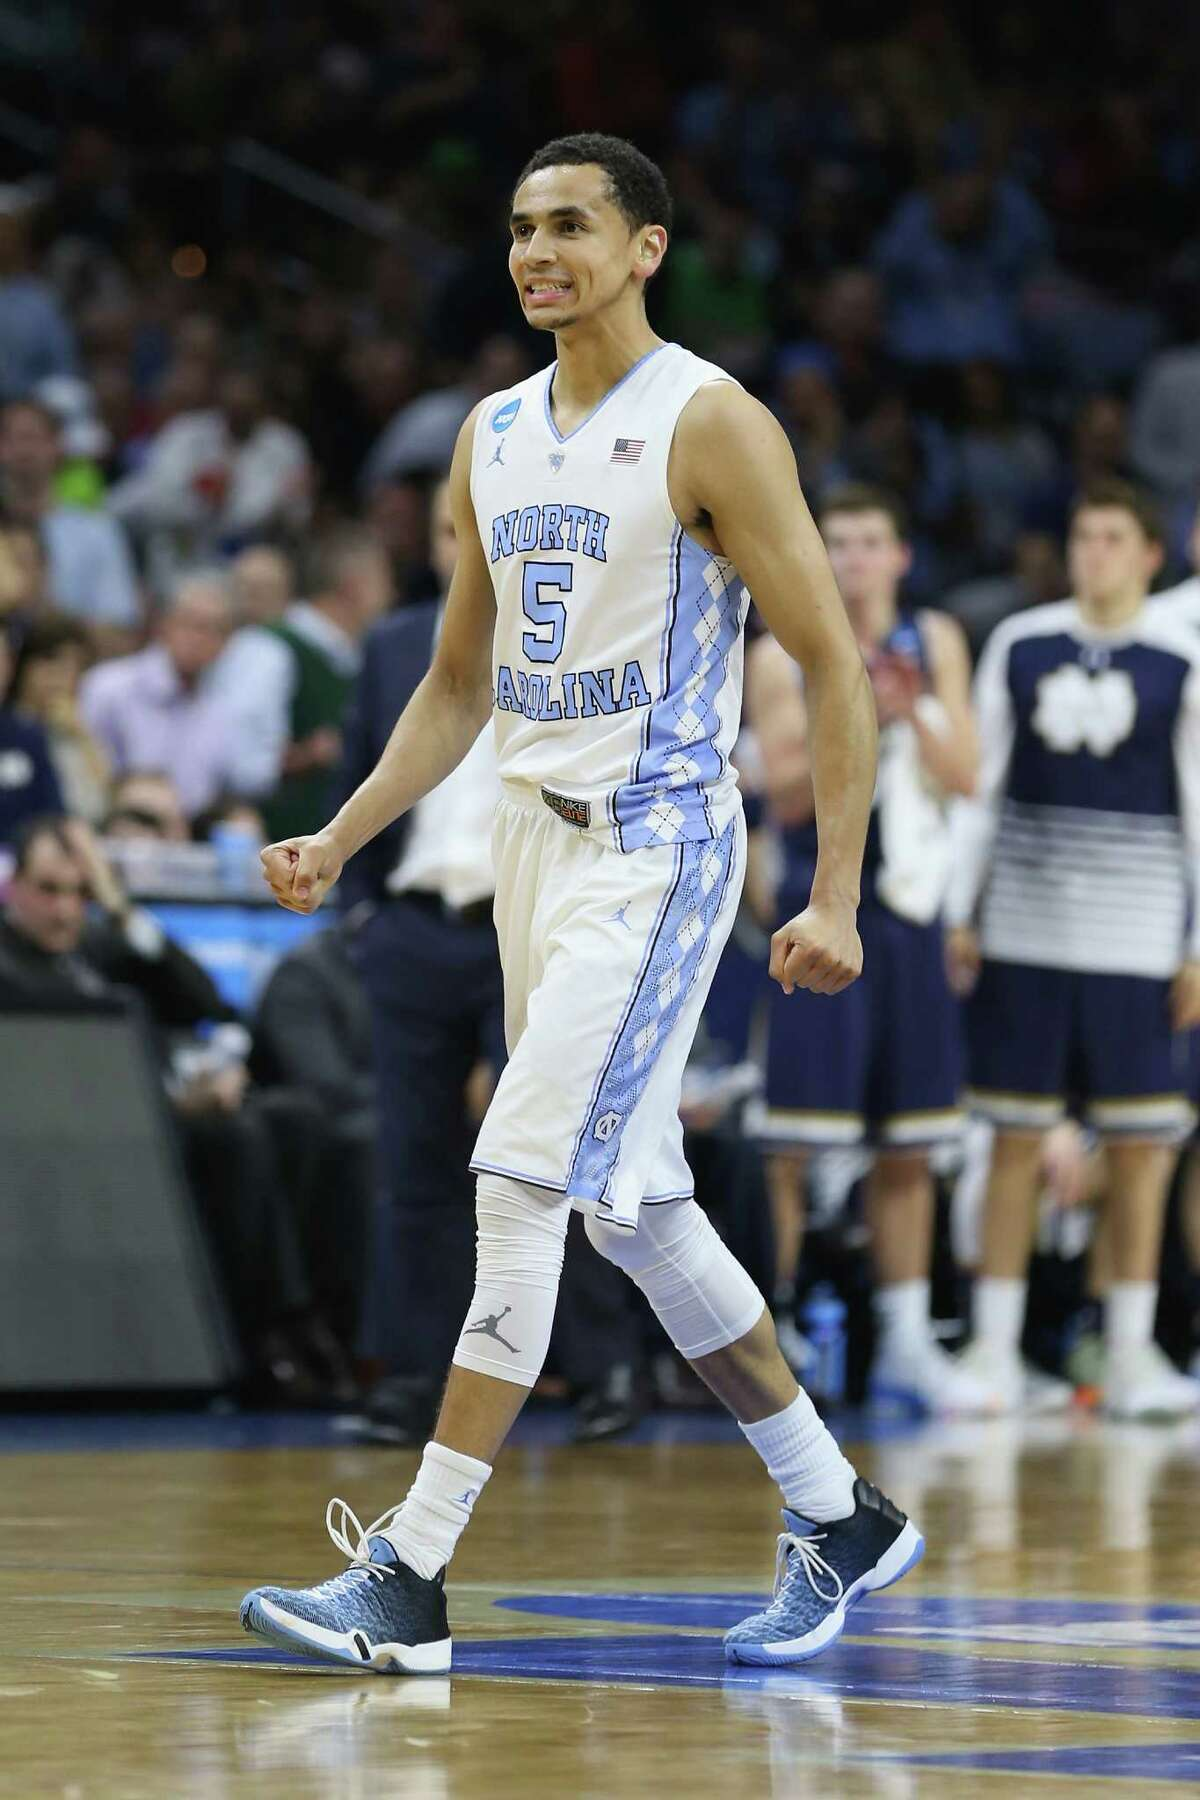 PHILADELPHIA, PA - MARCH 27: Marcus Paige #5 of the North Carolina Tar Heels reacts in the second half against the Notre Dame Fighting Irish during the 2016 NCAA Men's Basketball Tournament East Regional Final at Wells Fargo Center on March 27, 2016 in Philadelphia, Pennsylvania.